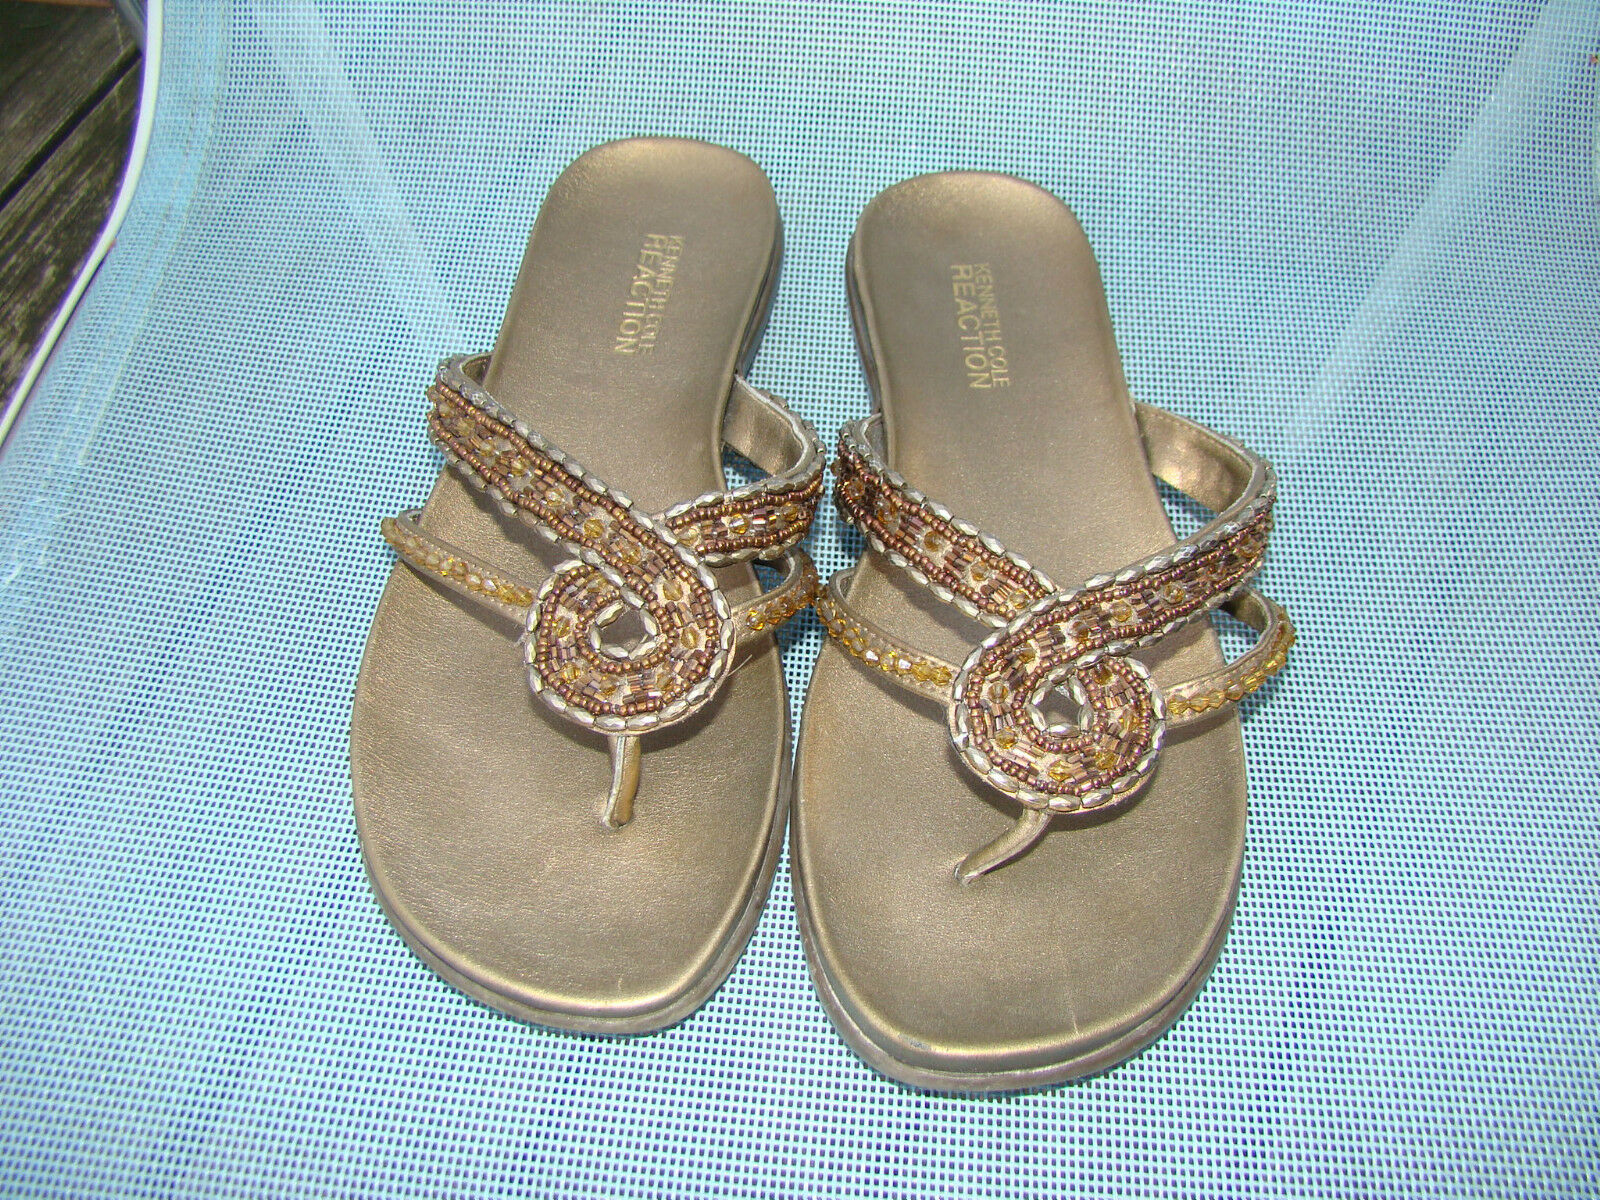 KENNETH COLE BEADS GOLDEN BRONZE METALLIC BEADED BEADS COLE SANDALS THONGS SIZE 6 M 5bf042